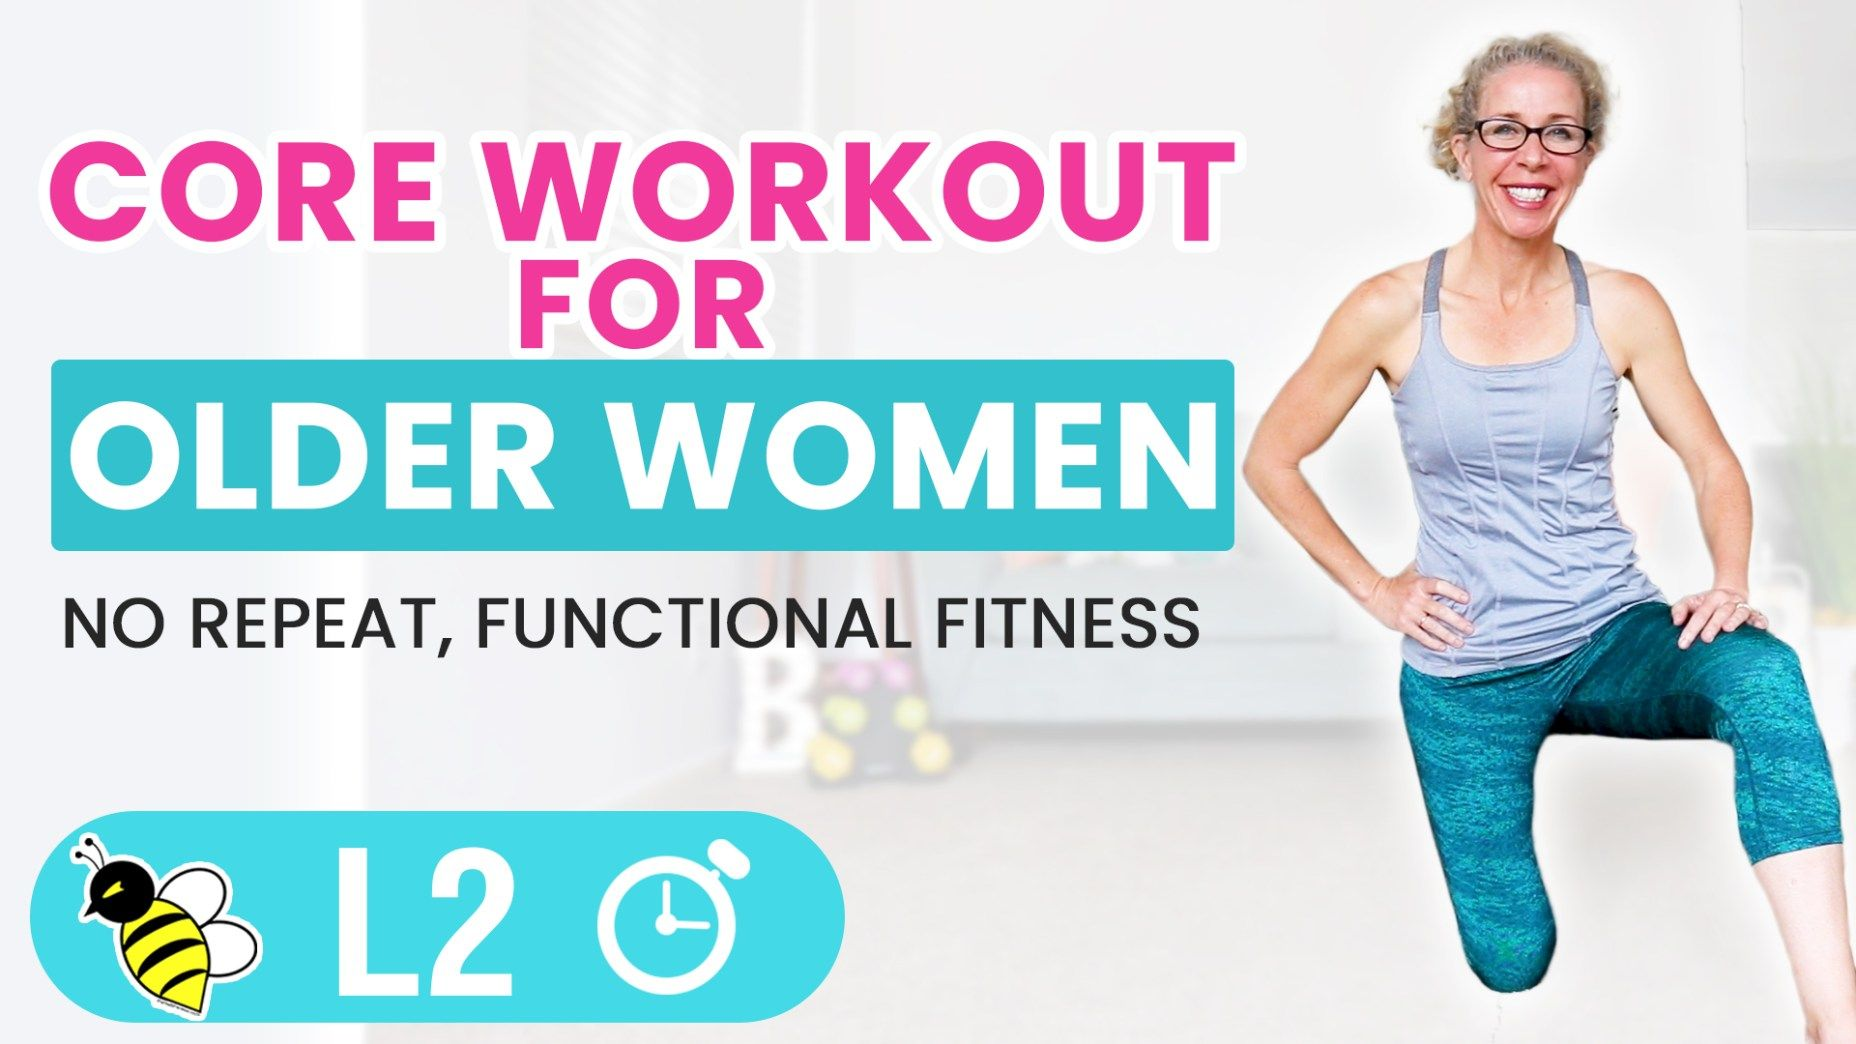 Empowering Core Workout for Older Women   Workout programs. Senior fitness. Workout